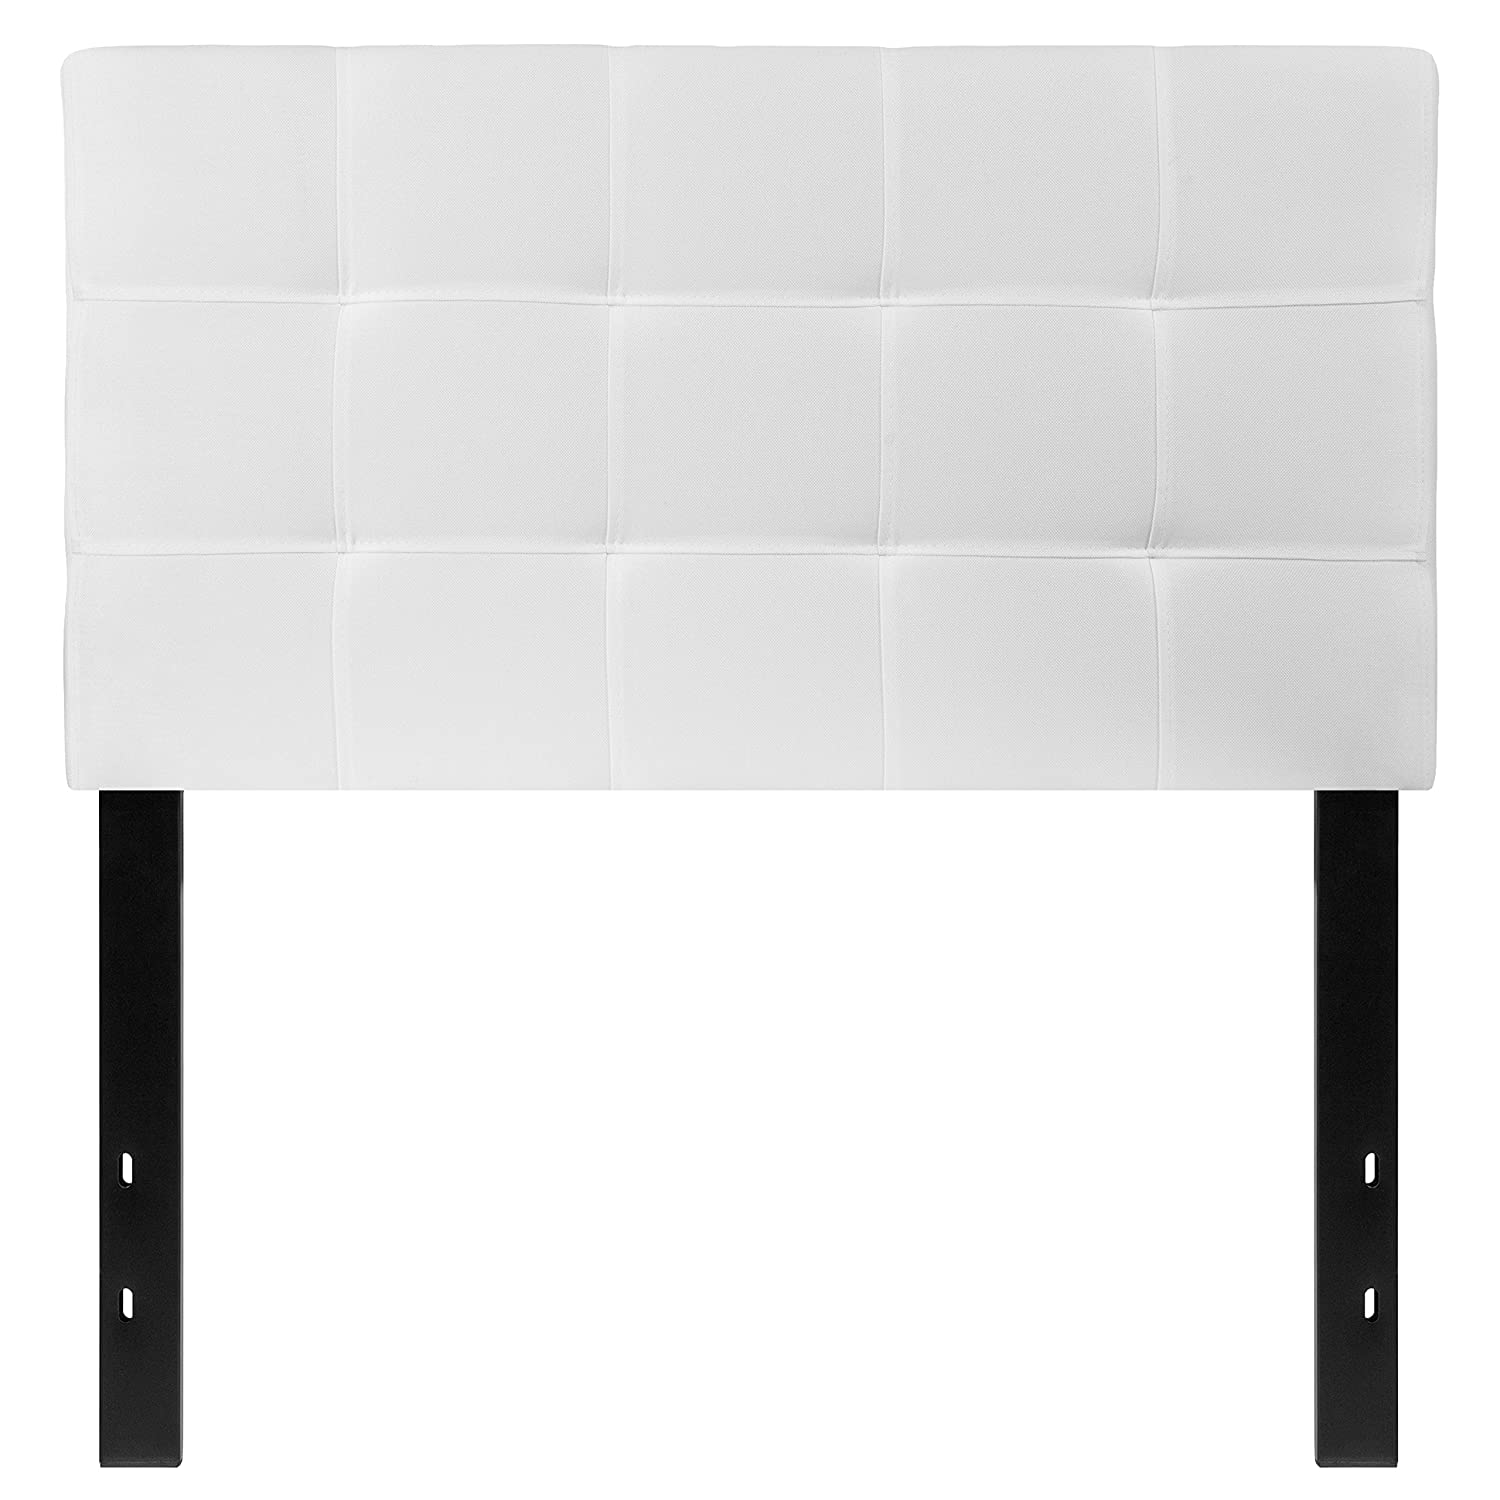 Flash Furniture Bedford Tufted Upholstered Twin Size Headboard in White Fabric HG-HB1704-T-W-GG